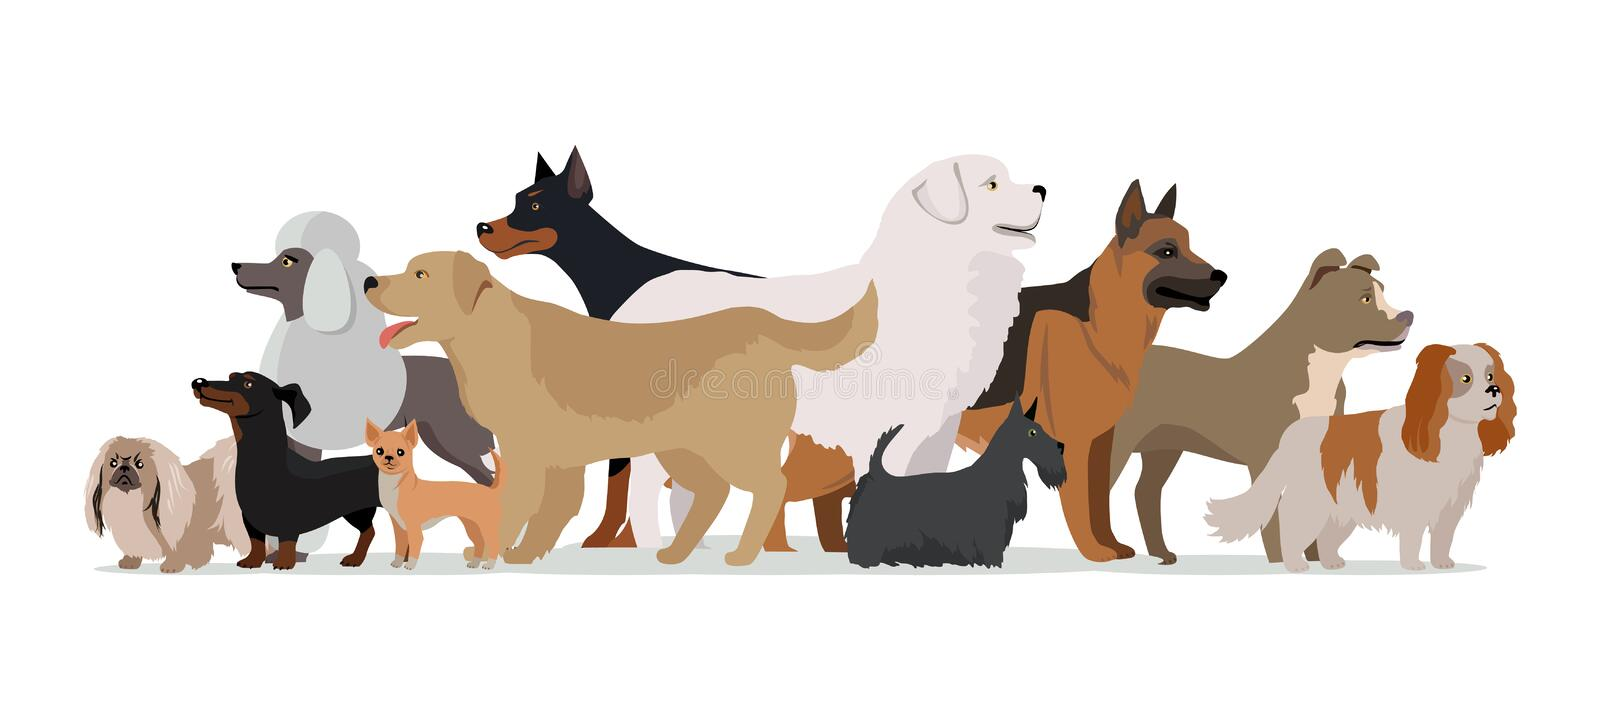 Group of Different Breeds Dogs. stock illustration